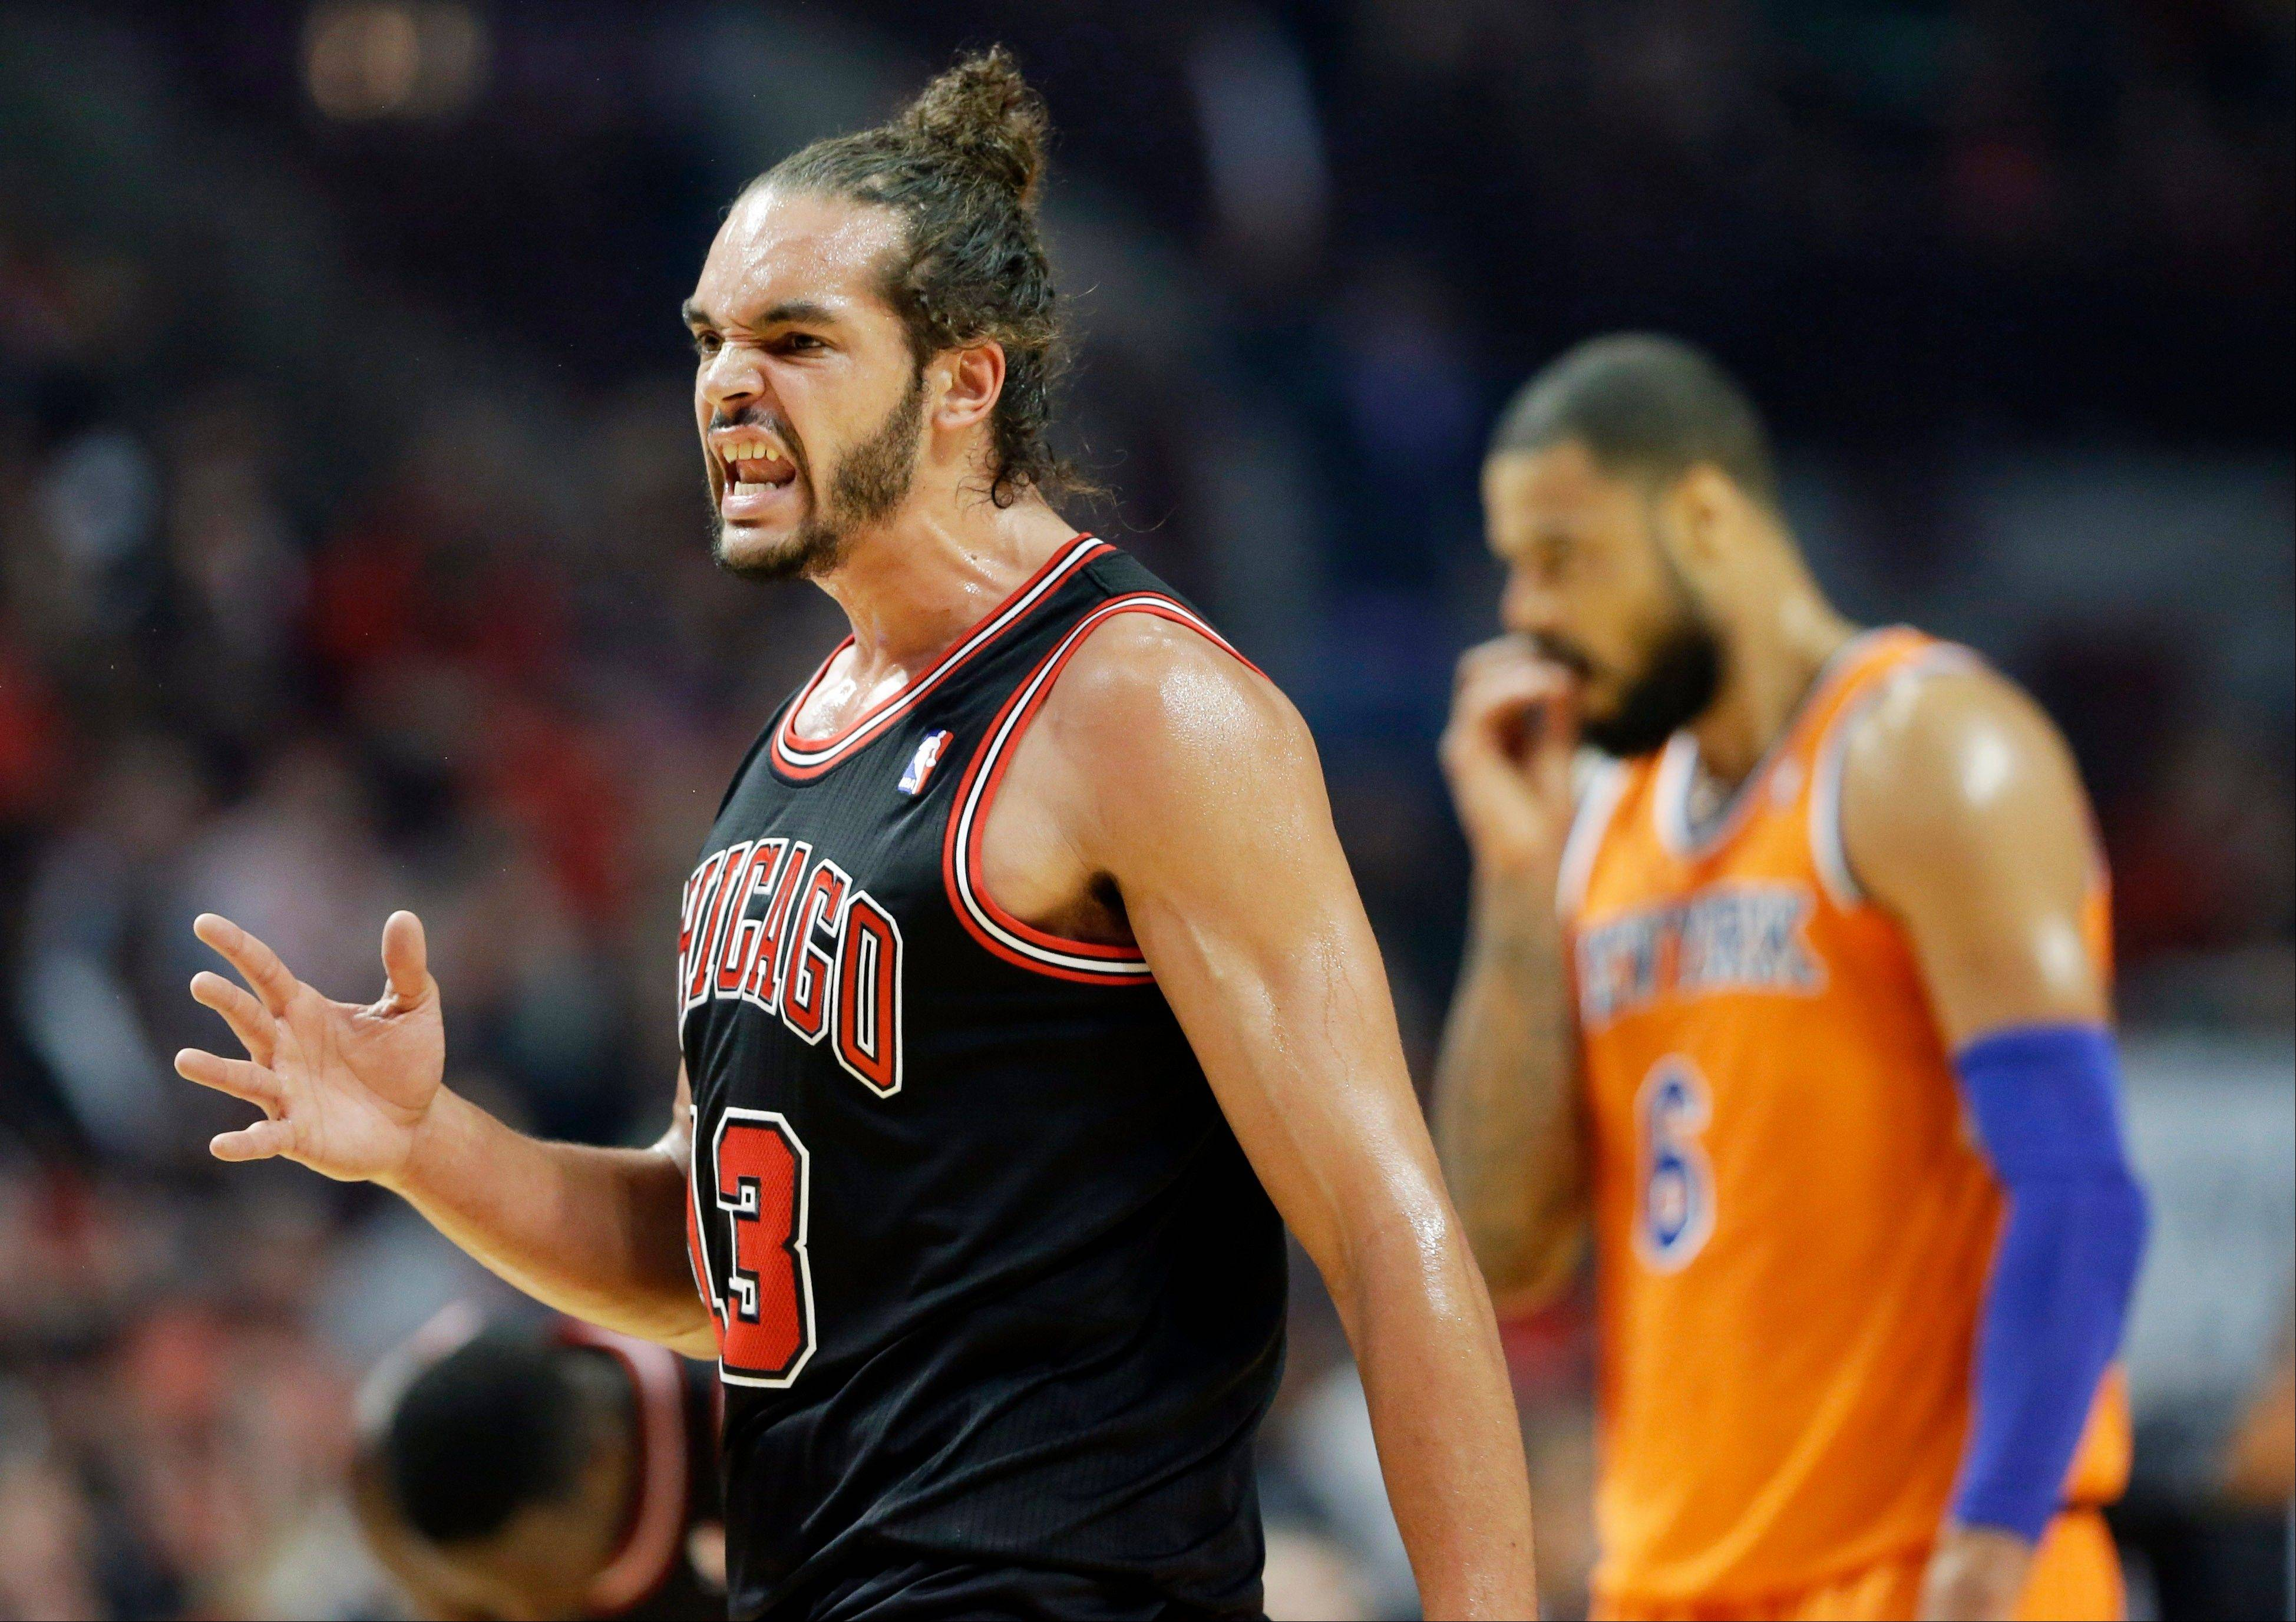 Joakim Noah, left, reacts after Derrick Rose scored during the first half of Thursday�s game against the Knicks in Chicago.